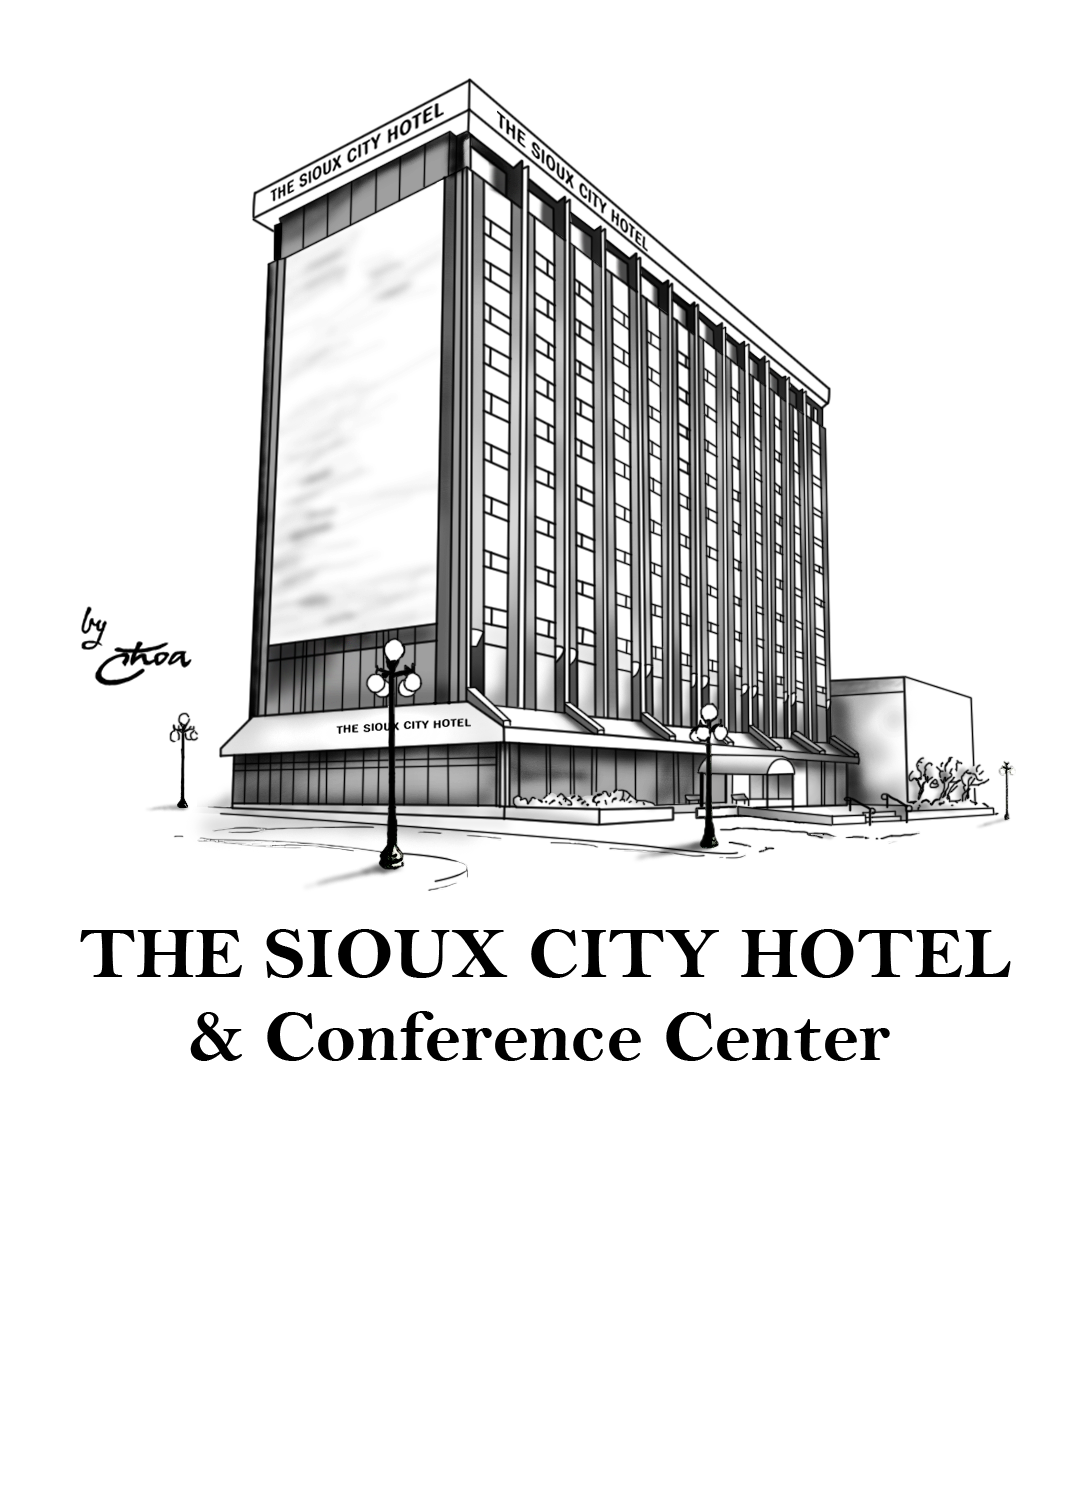 The Sioux City Hotel & Conference Center